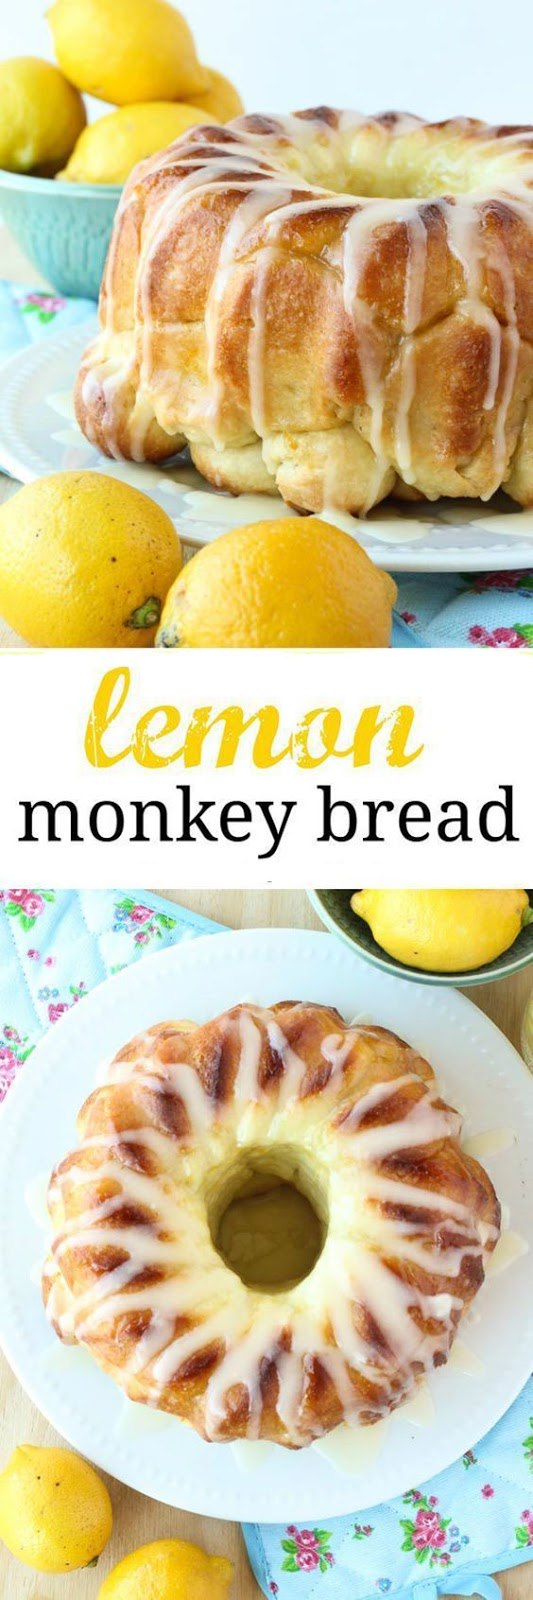 Glazed Lemon Monkey Bread